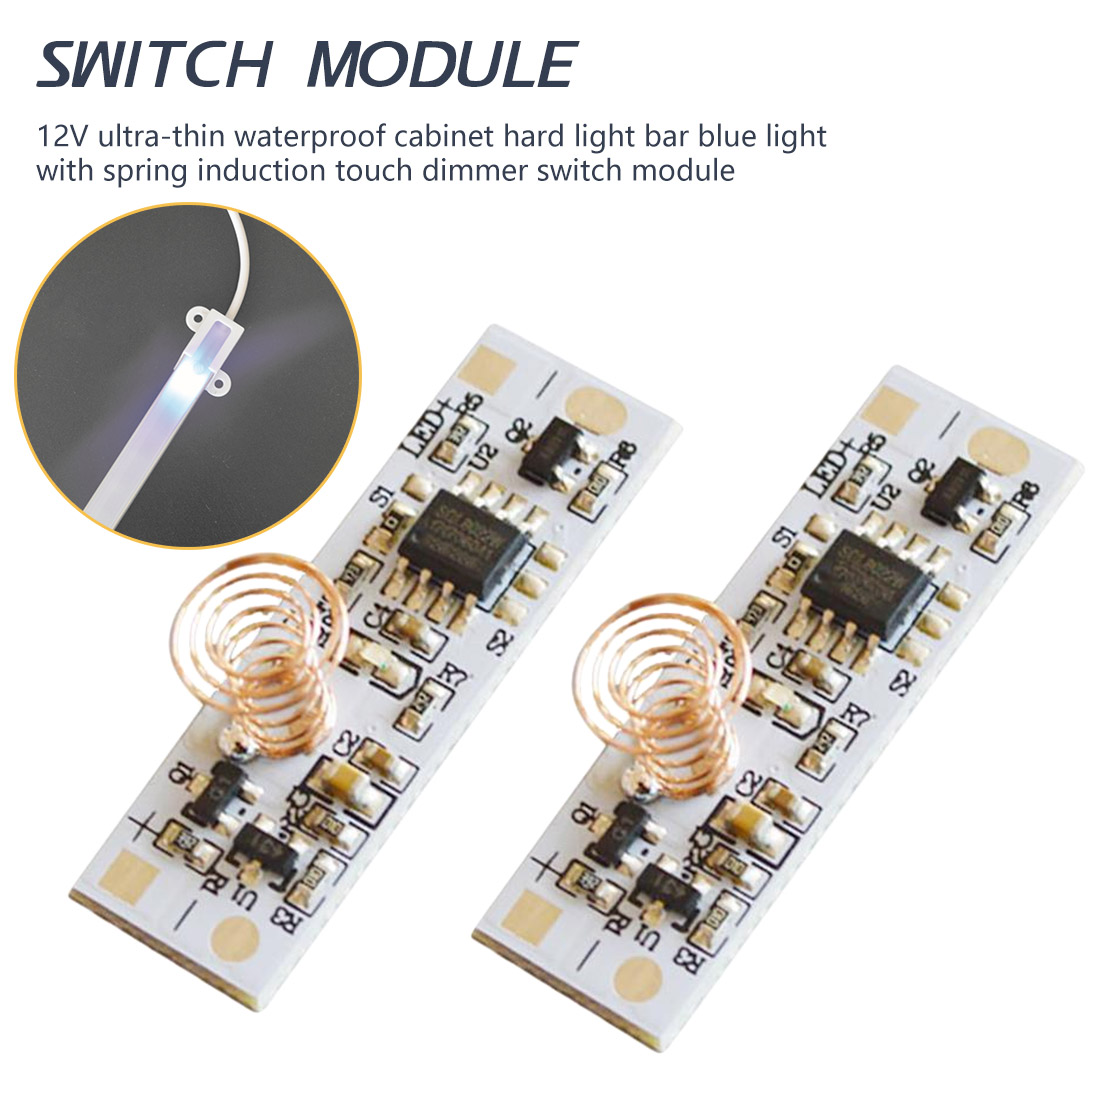 12V LED Light Strip Capacitive Touch Sensor Switch Coll Spring Switch LED Dimmer Contral Swith 36W 3A For Smart Home